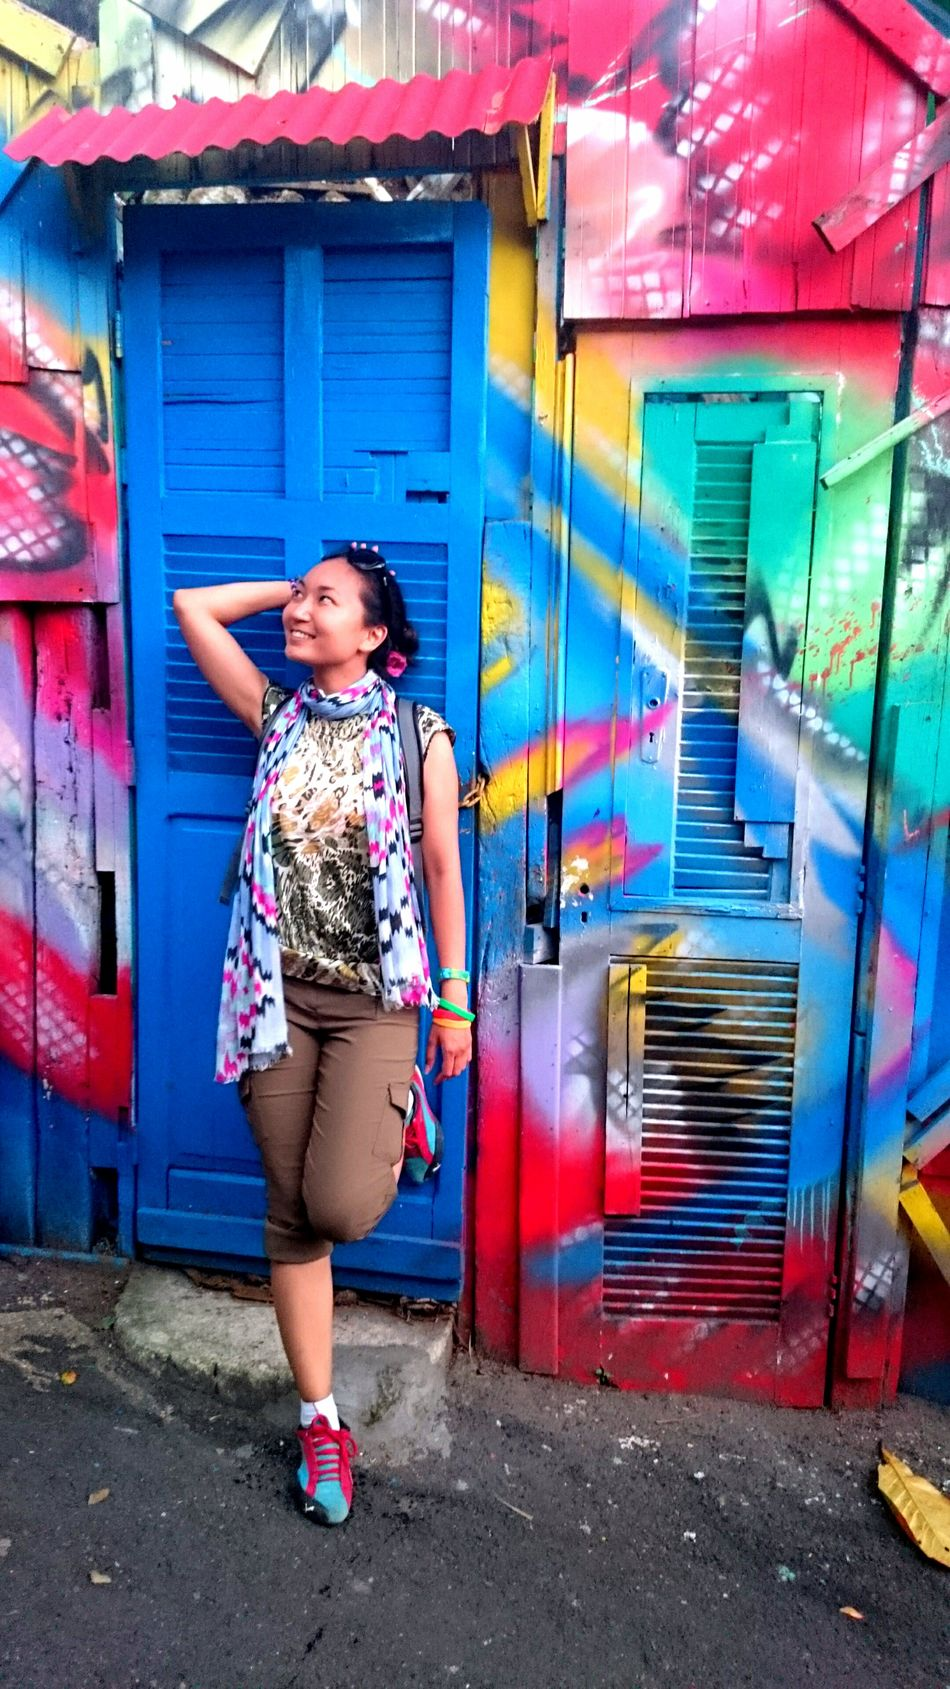 Adventure Buddies Bold Neons, Bright Pastels Brazilian Bright Carioca City Colorful Door Doors Favela Full Length Graffiti Happy Lifestyles Multi Colored Neon Colored Smiling Street Art Street Fashion Streetphotography Travel Traveller Vivid Women Young Adult